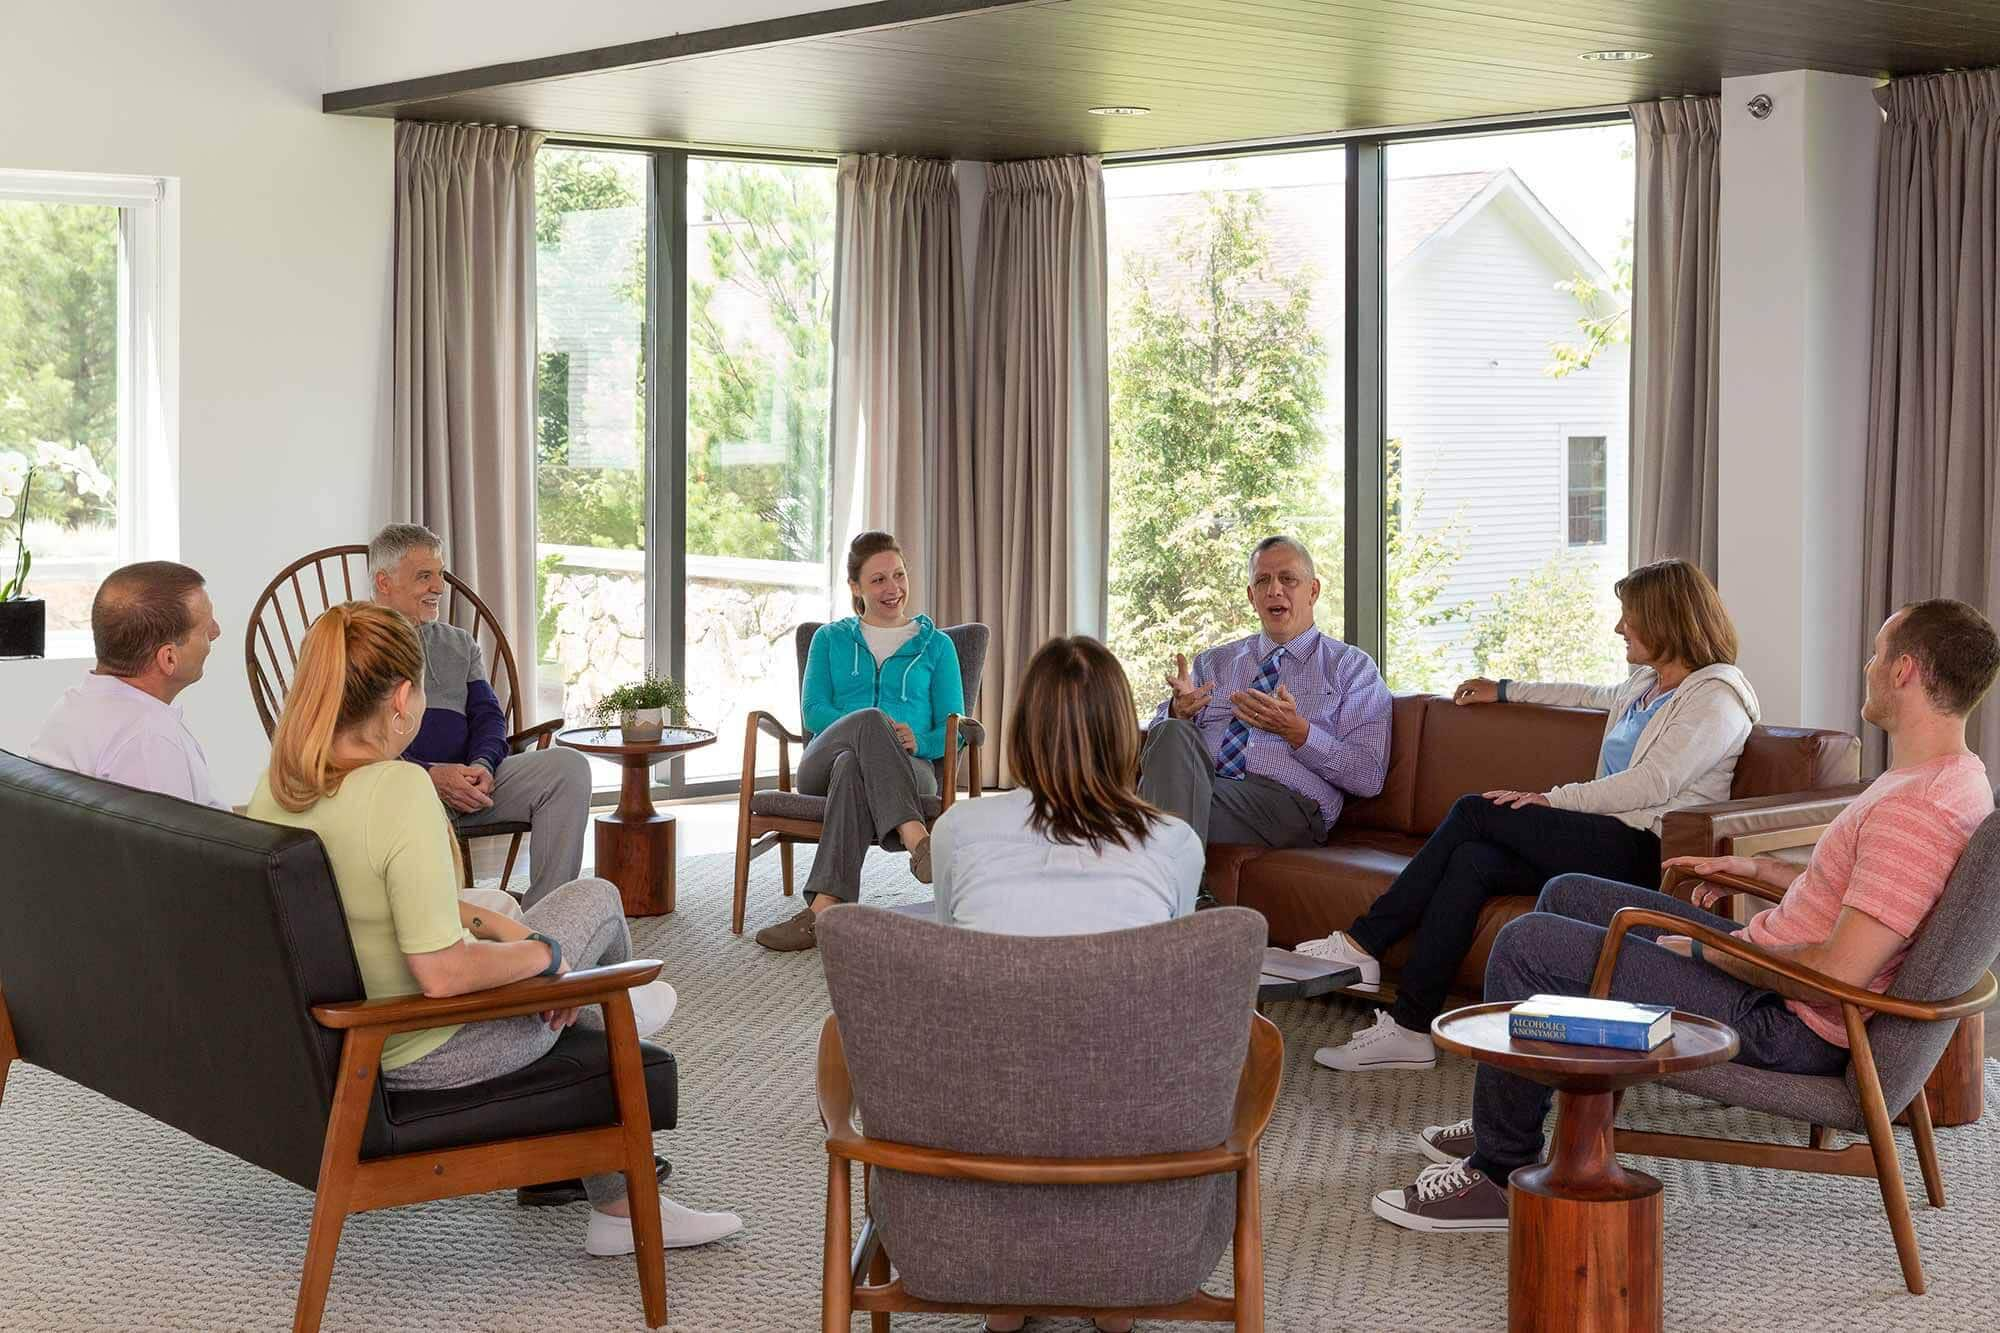 Group therapy addressing substance abuse